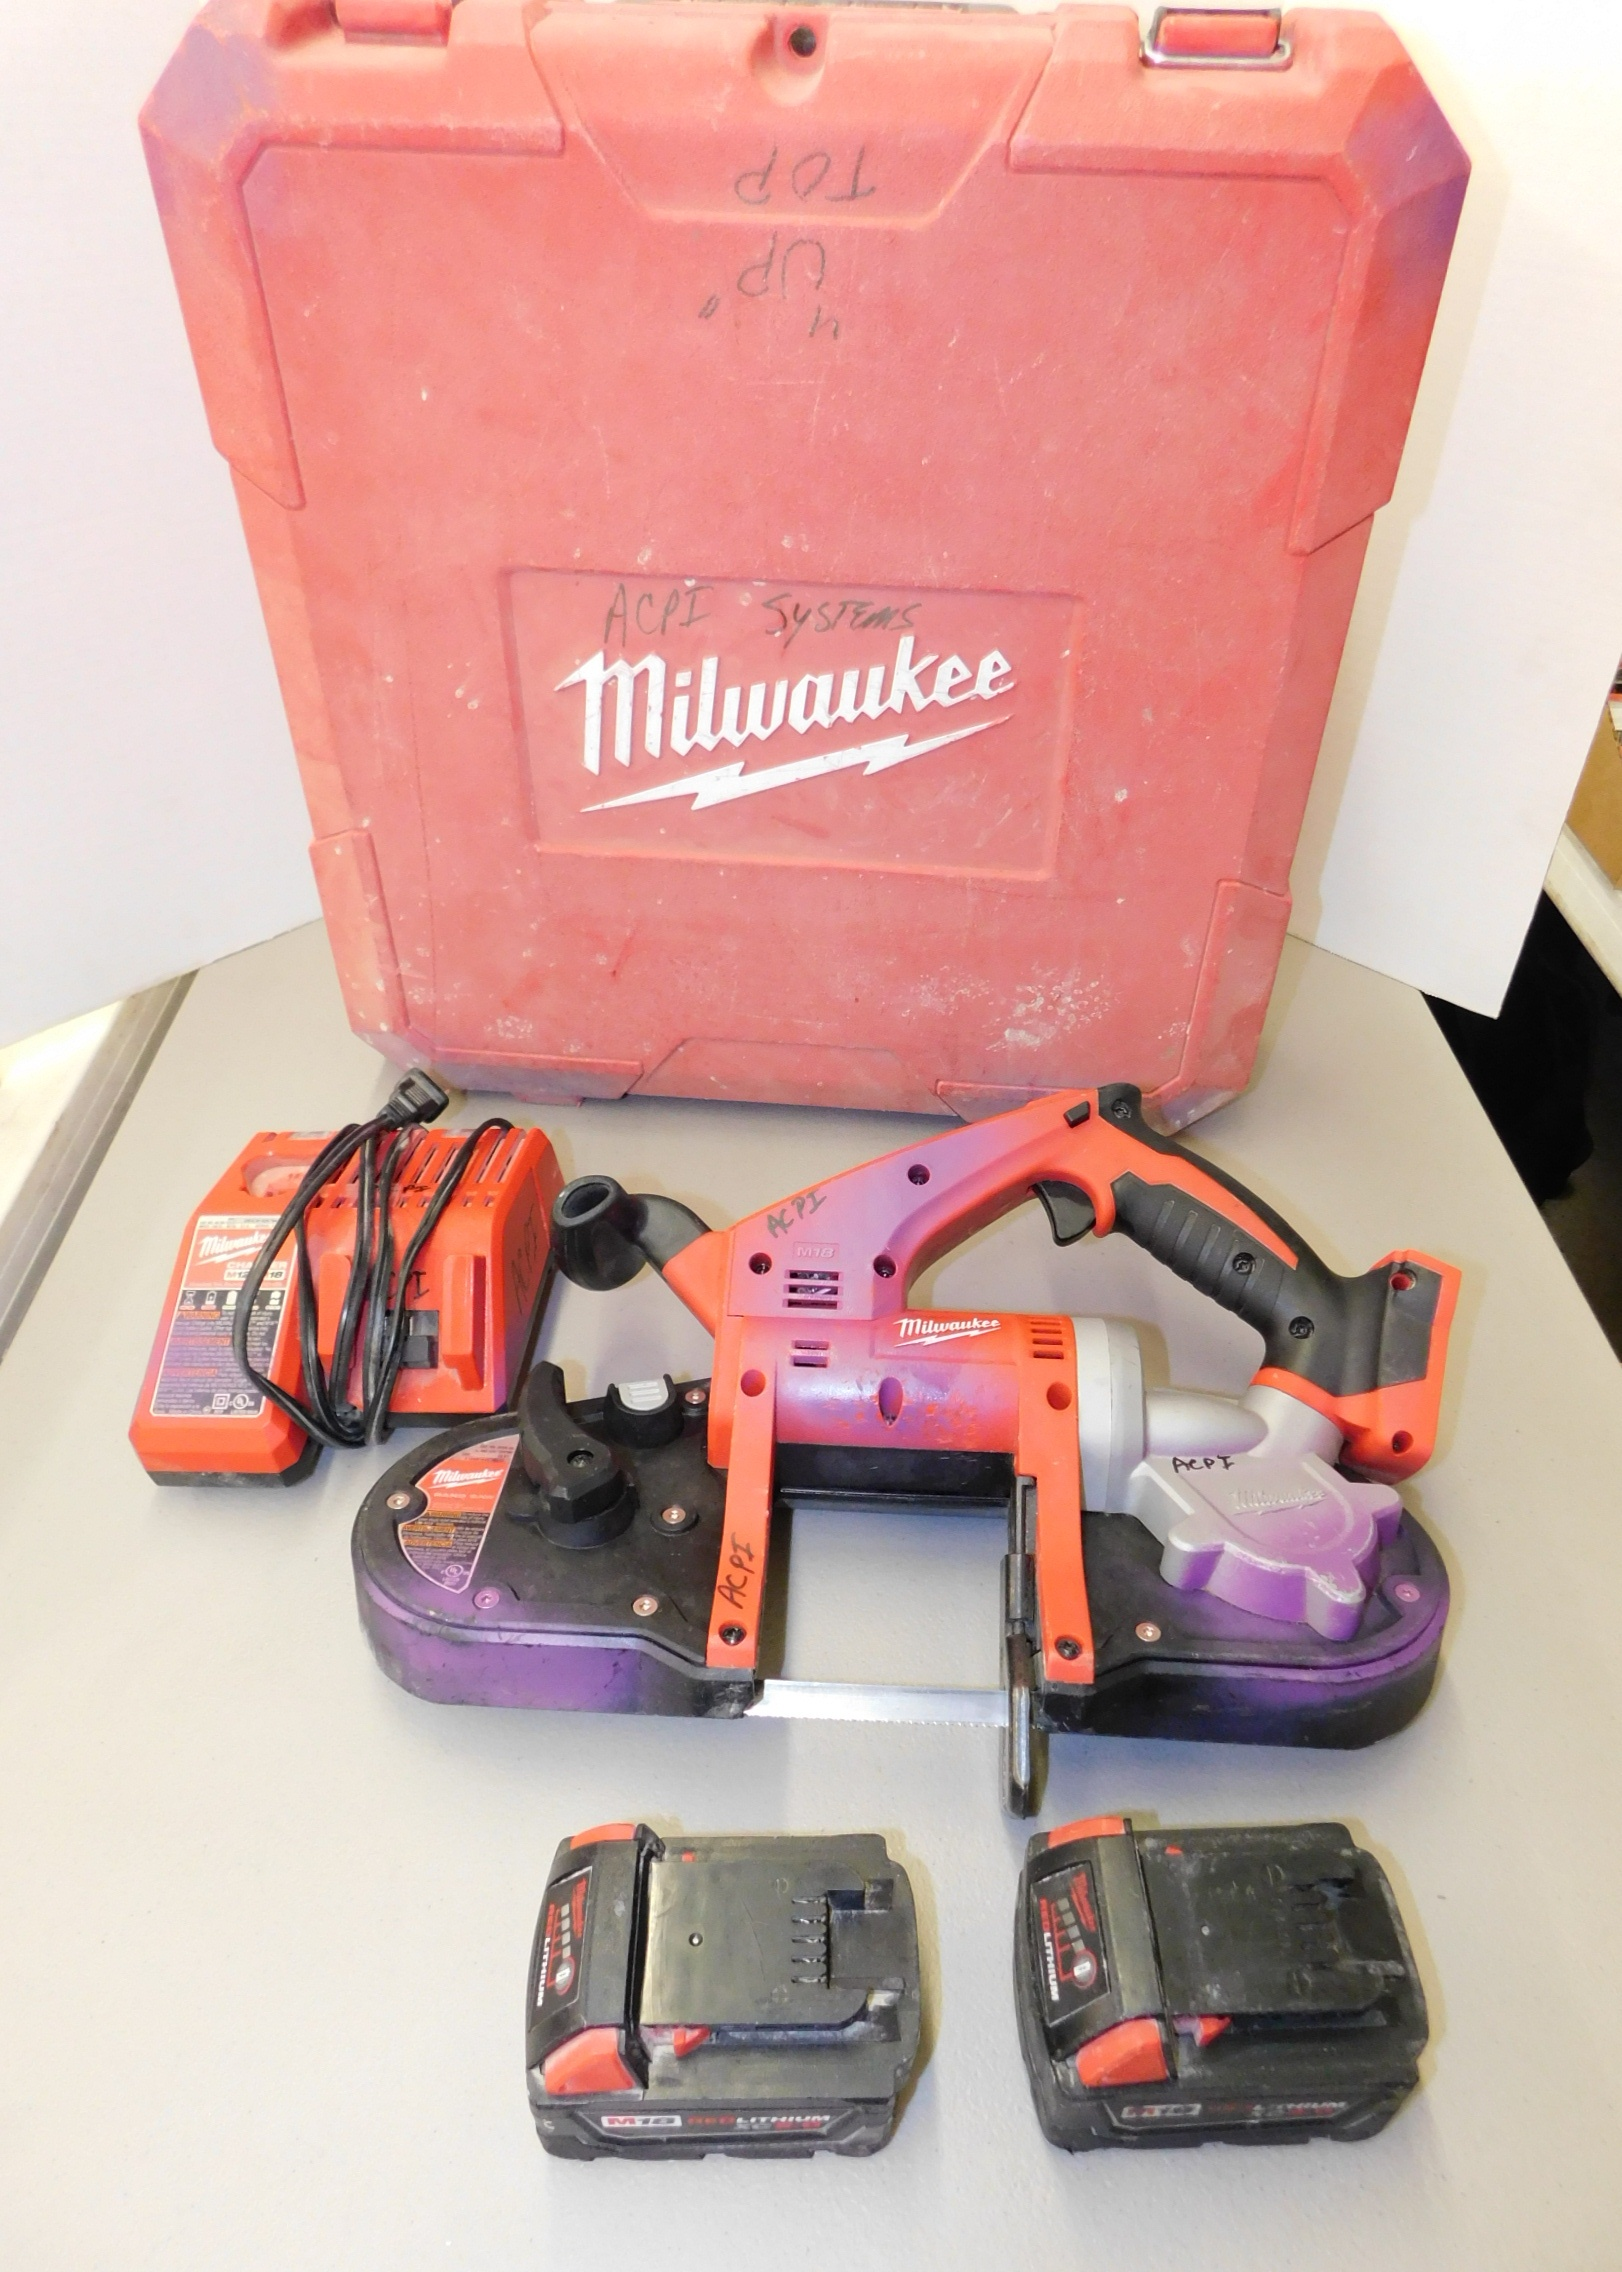 Lot 258 - Milwaukee Model 2629-20 18V Cordless Portable Bandsaw with Battery and Charger